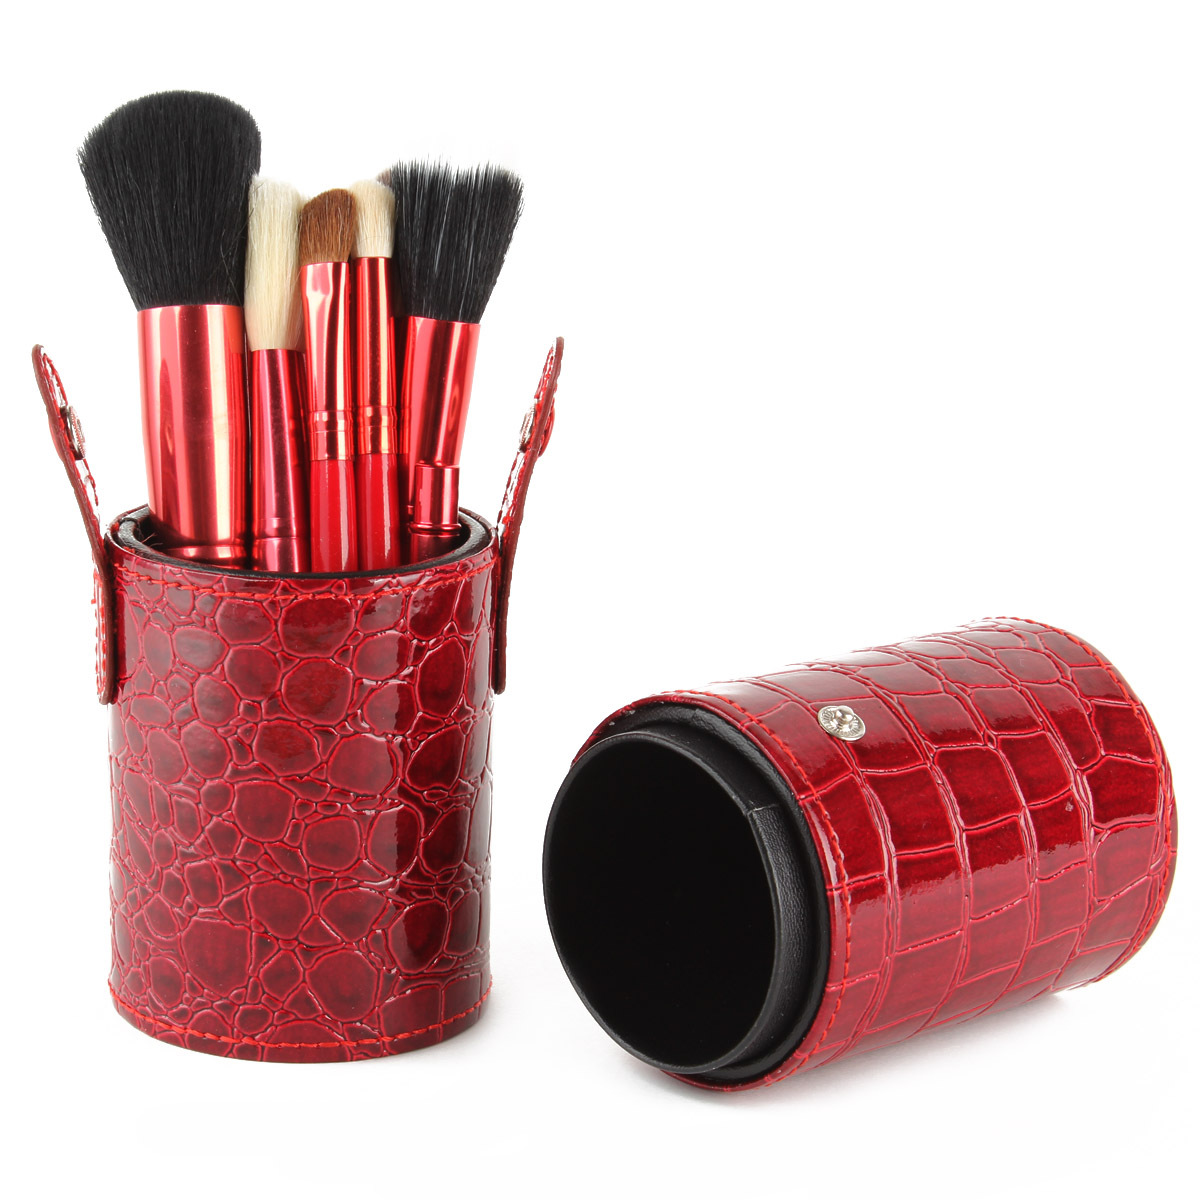 Aufbewahrung Make Up Pinsel Kosmetik Pinsel Bürste Set Halter Make Up Pinselhalter